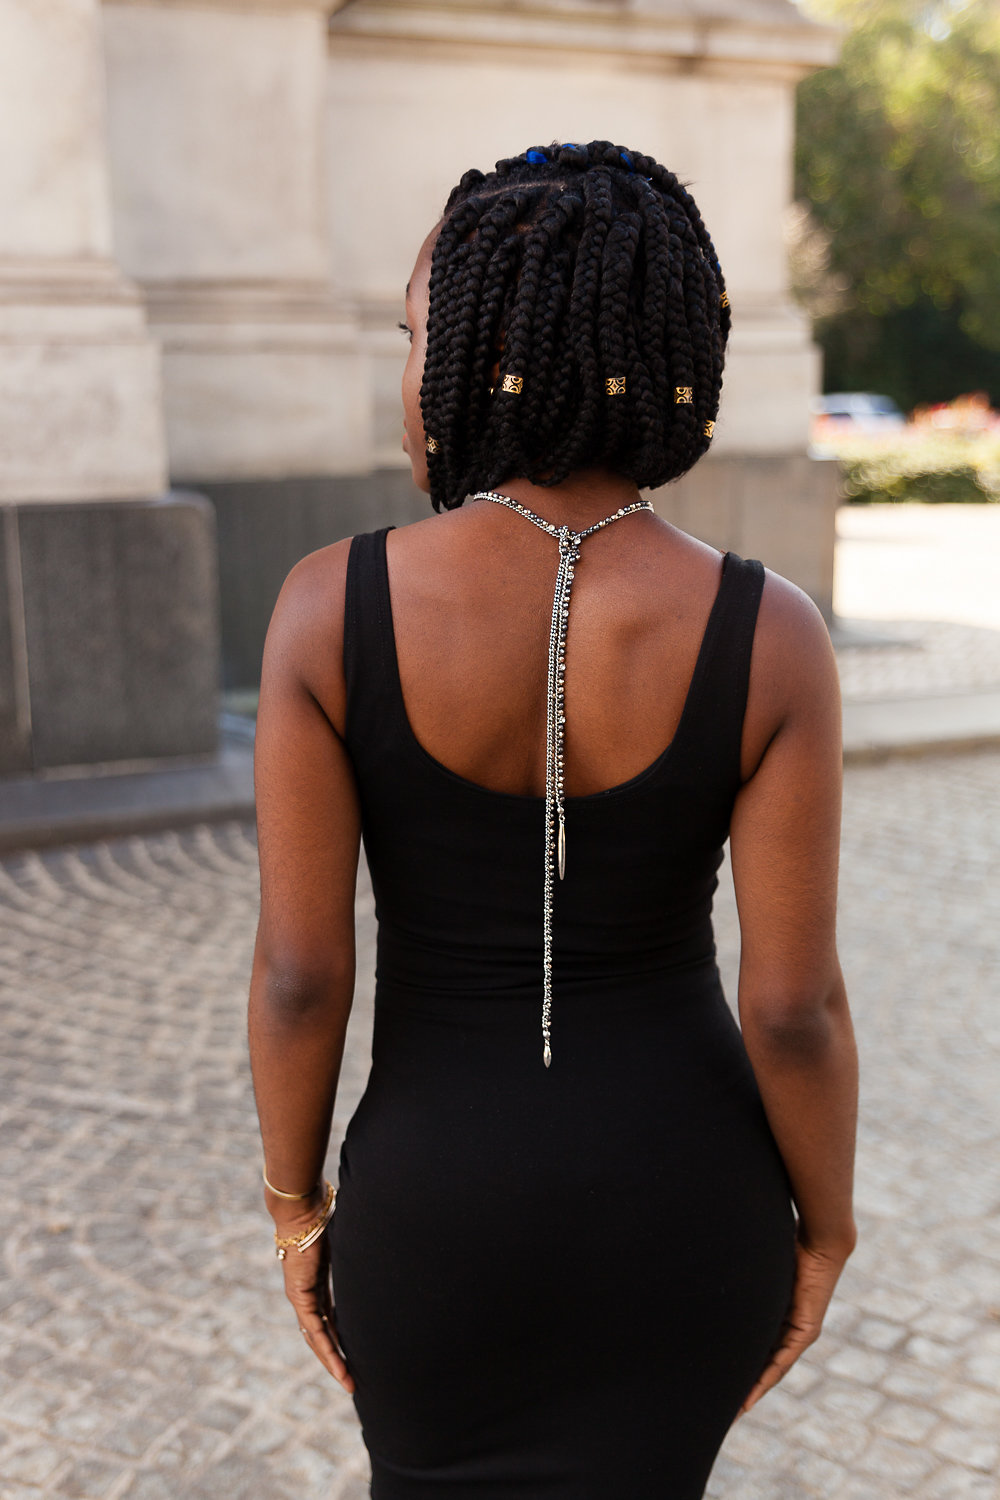 The Back Tie - For a sexy look with a low back, create a loop knot similar to the simple knot shown above and swing the necklace towards the back.